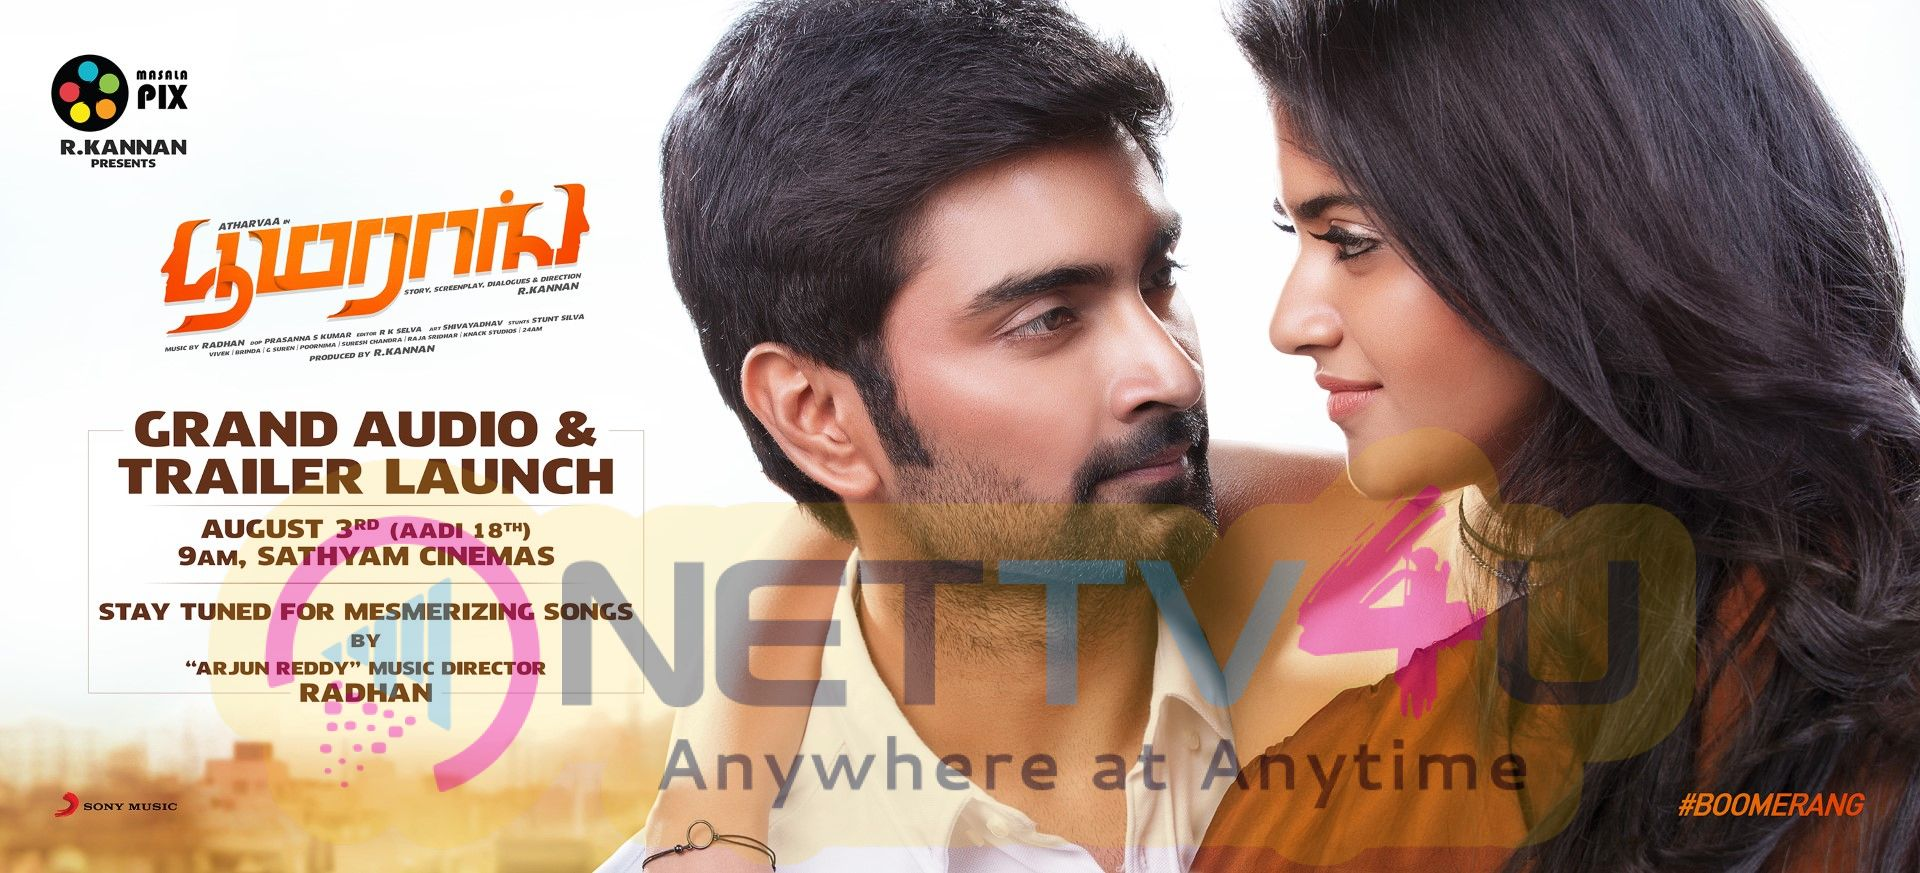 Boomerang Audio Announcement Poster